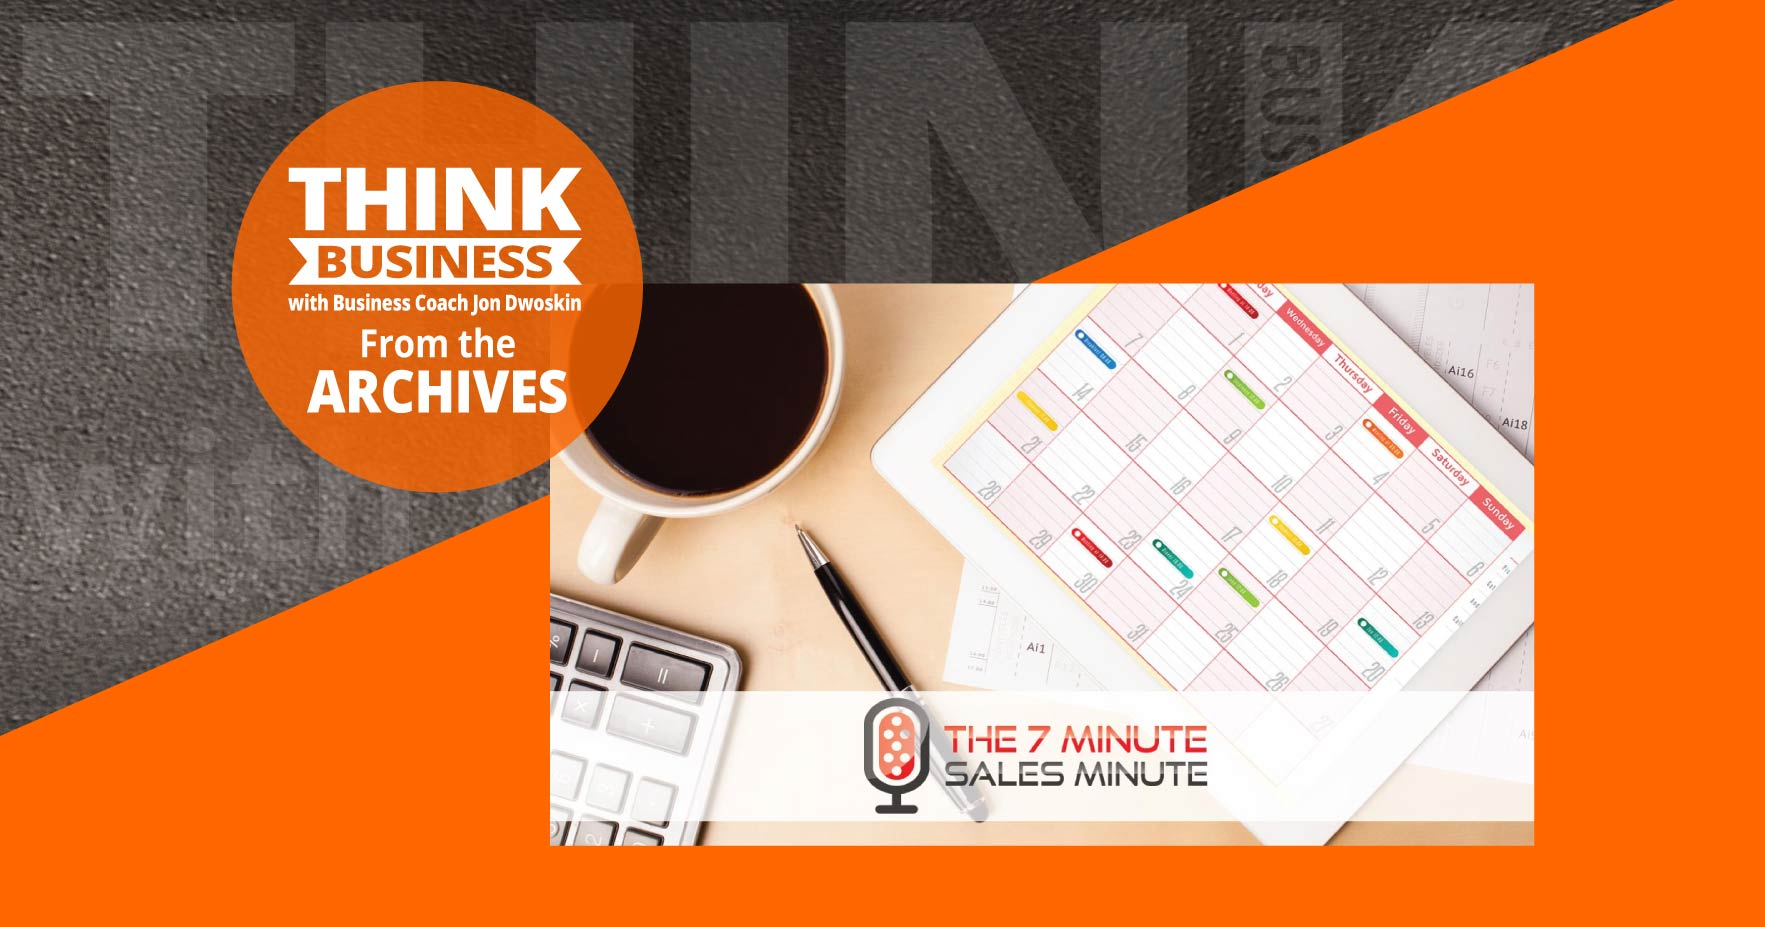 THINK Business Podcast: The Socials: Grow Your Business with Social Media